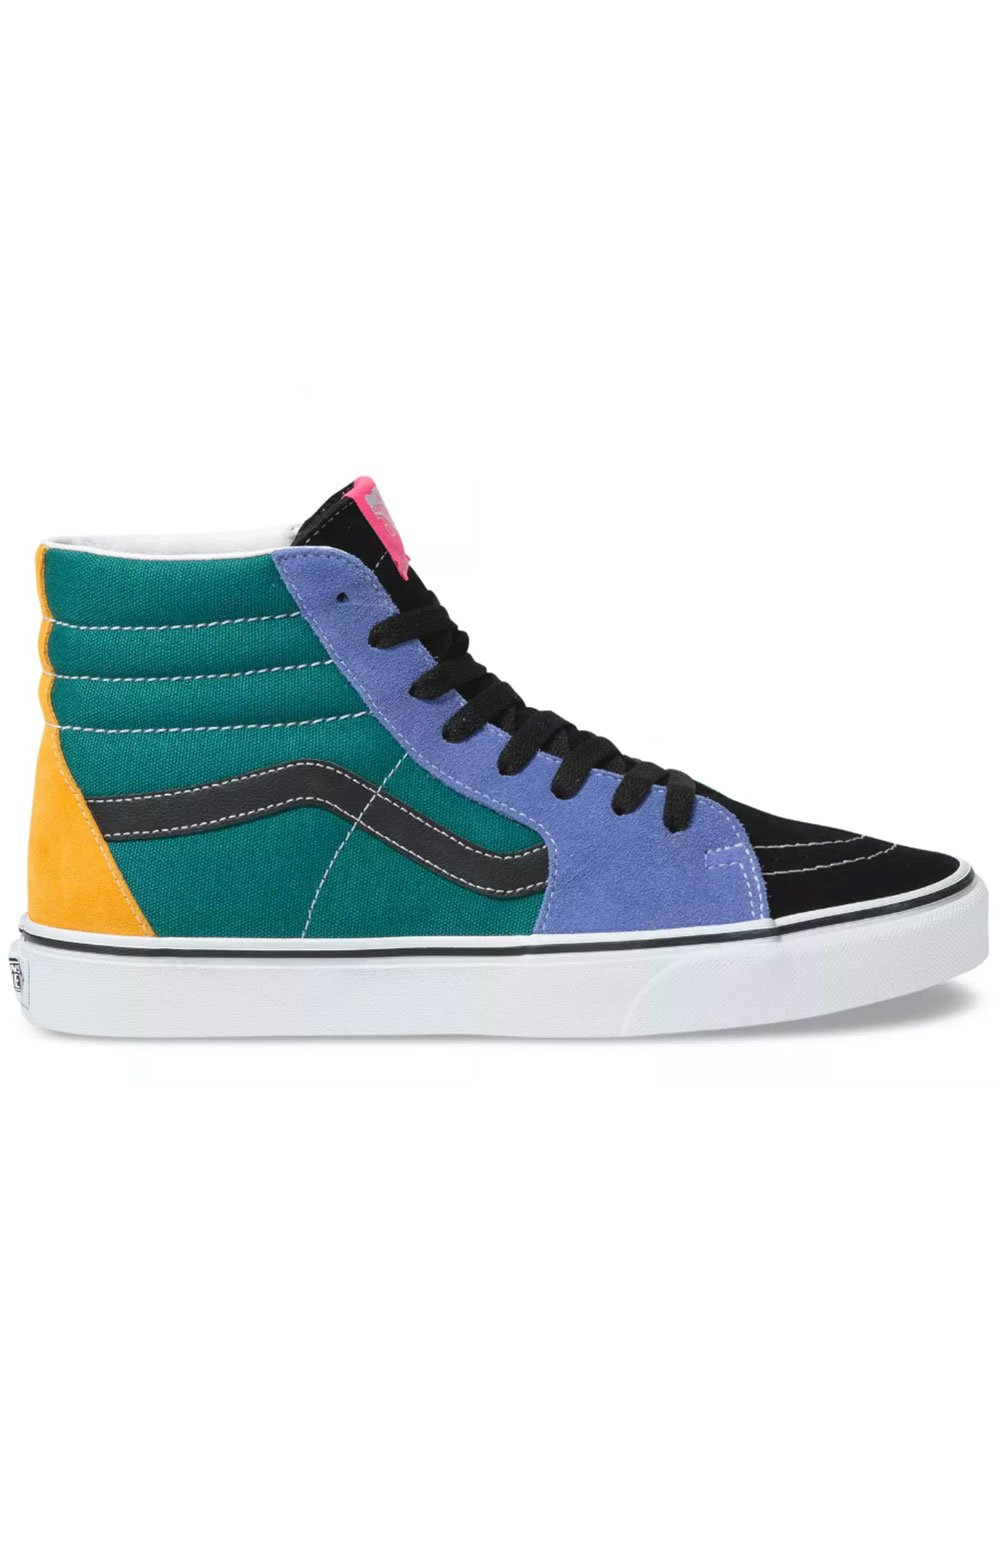 (BV6TGN) Mix & Match Sk8-Hi Shoe - Cadmium Yellow/Tidepool